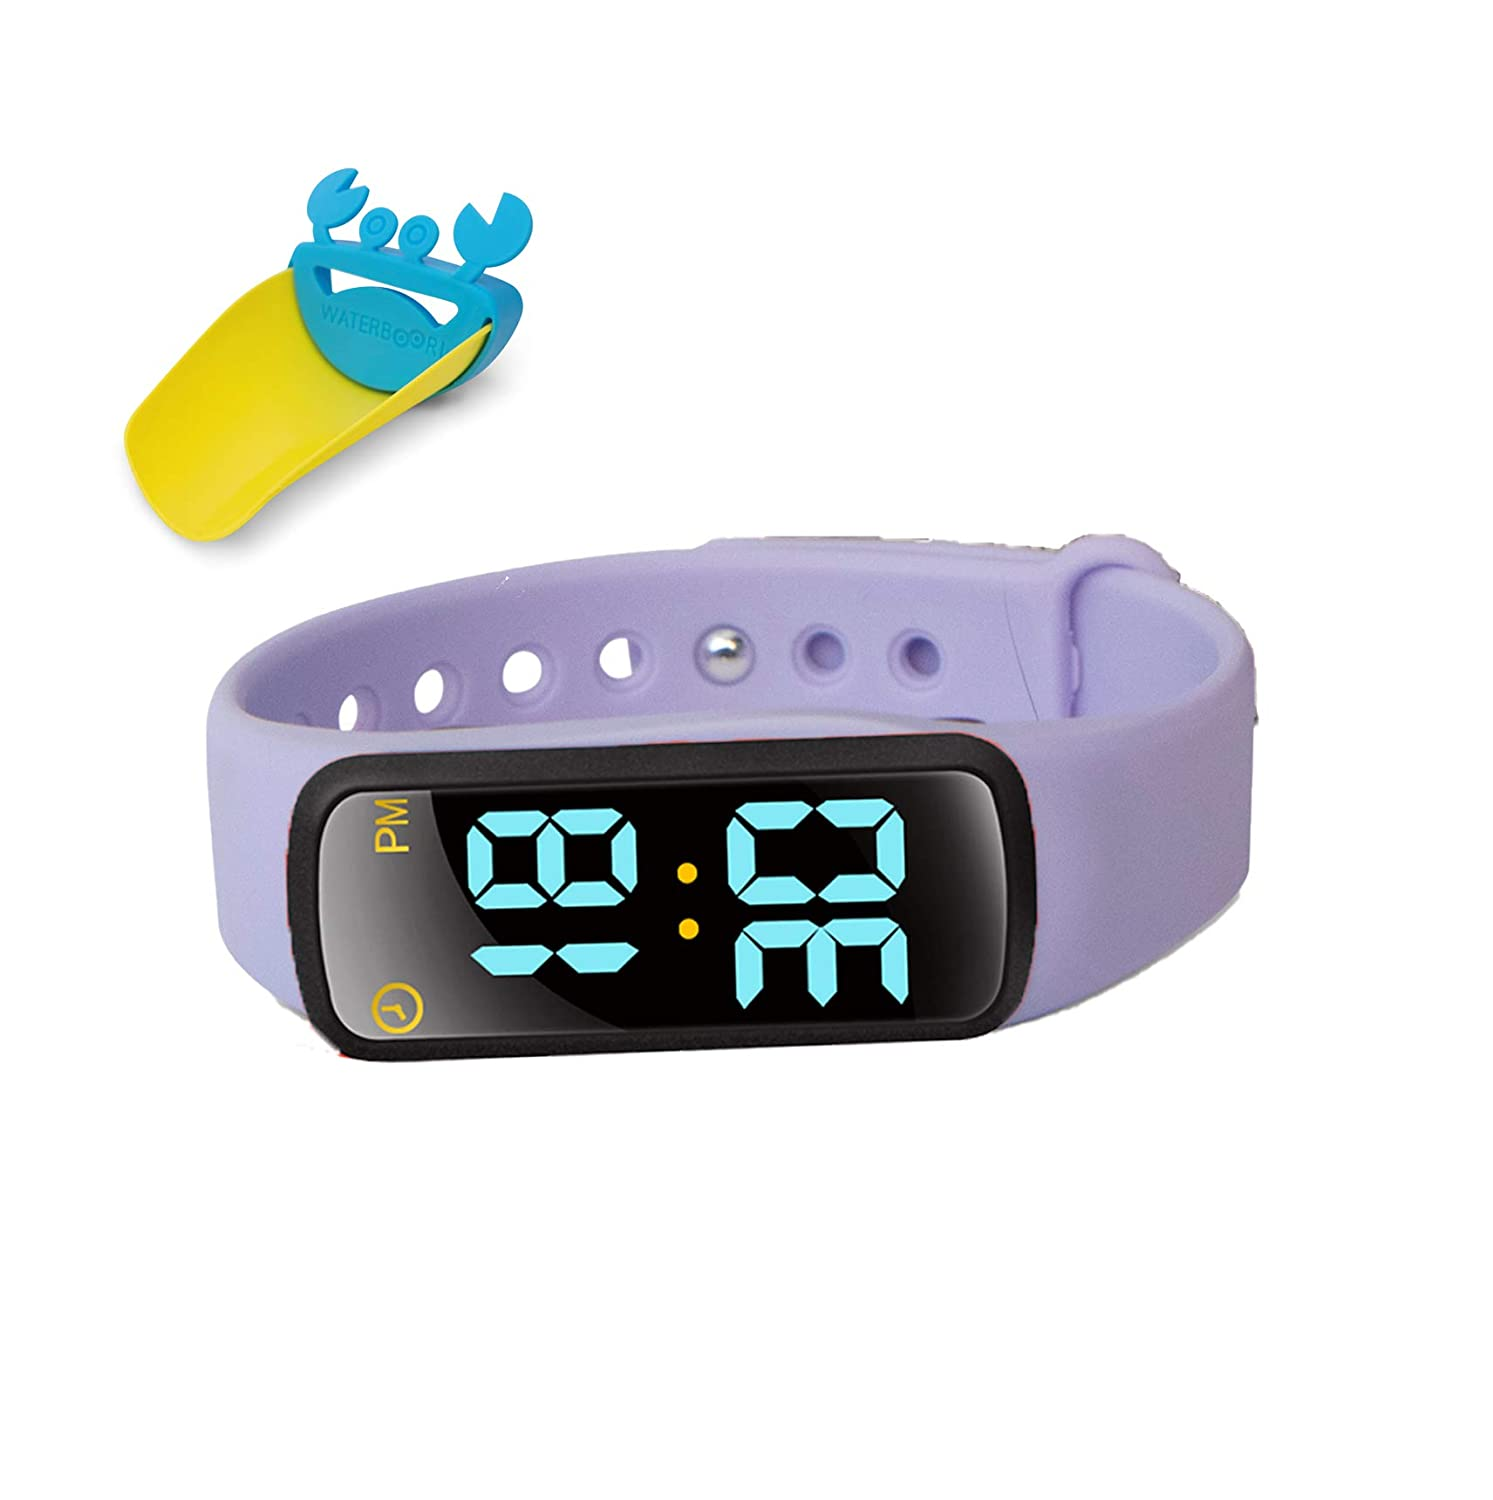 EZ Baby - Toddler Potty Training Watch - Non-Toxic, Waterproof, Rechargeable, Fun and Exciting Potty Training- Boys, Girls- (Purple)